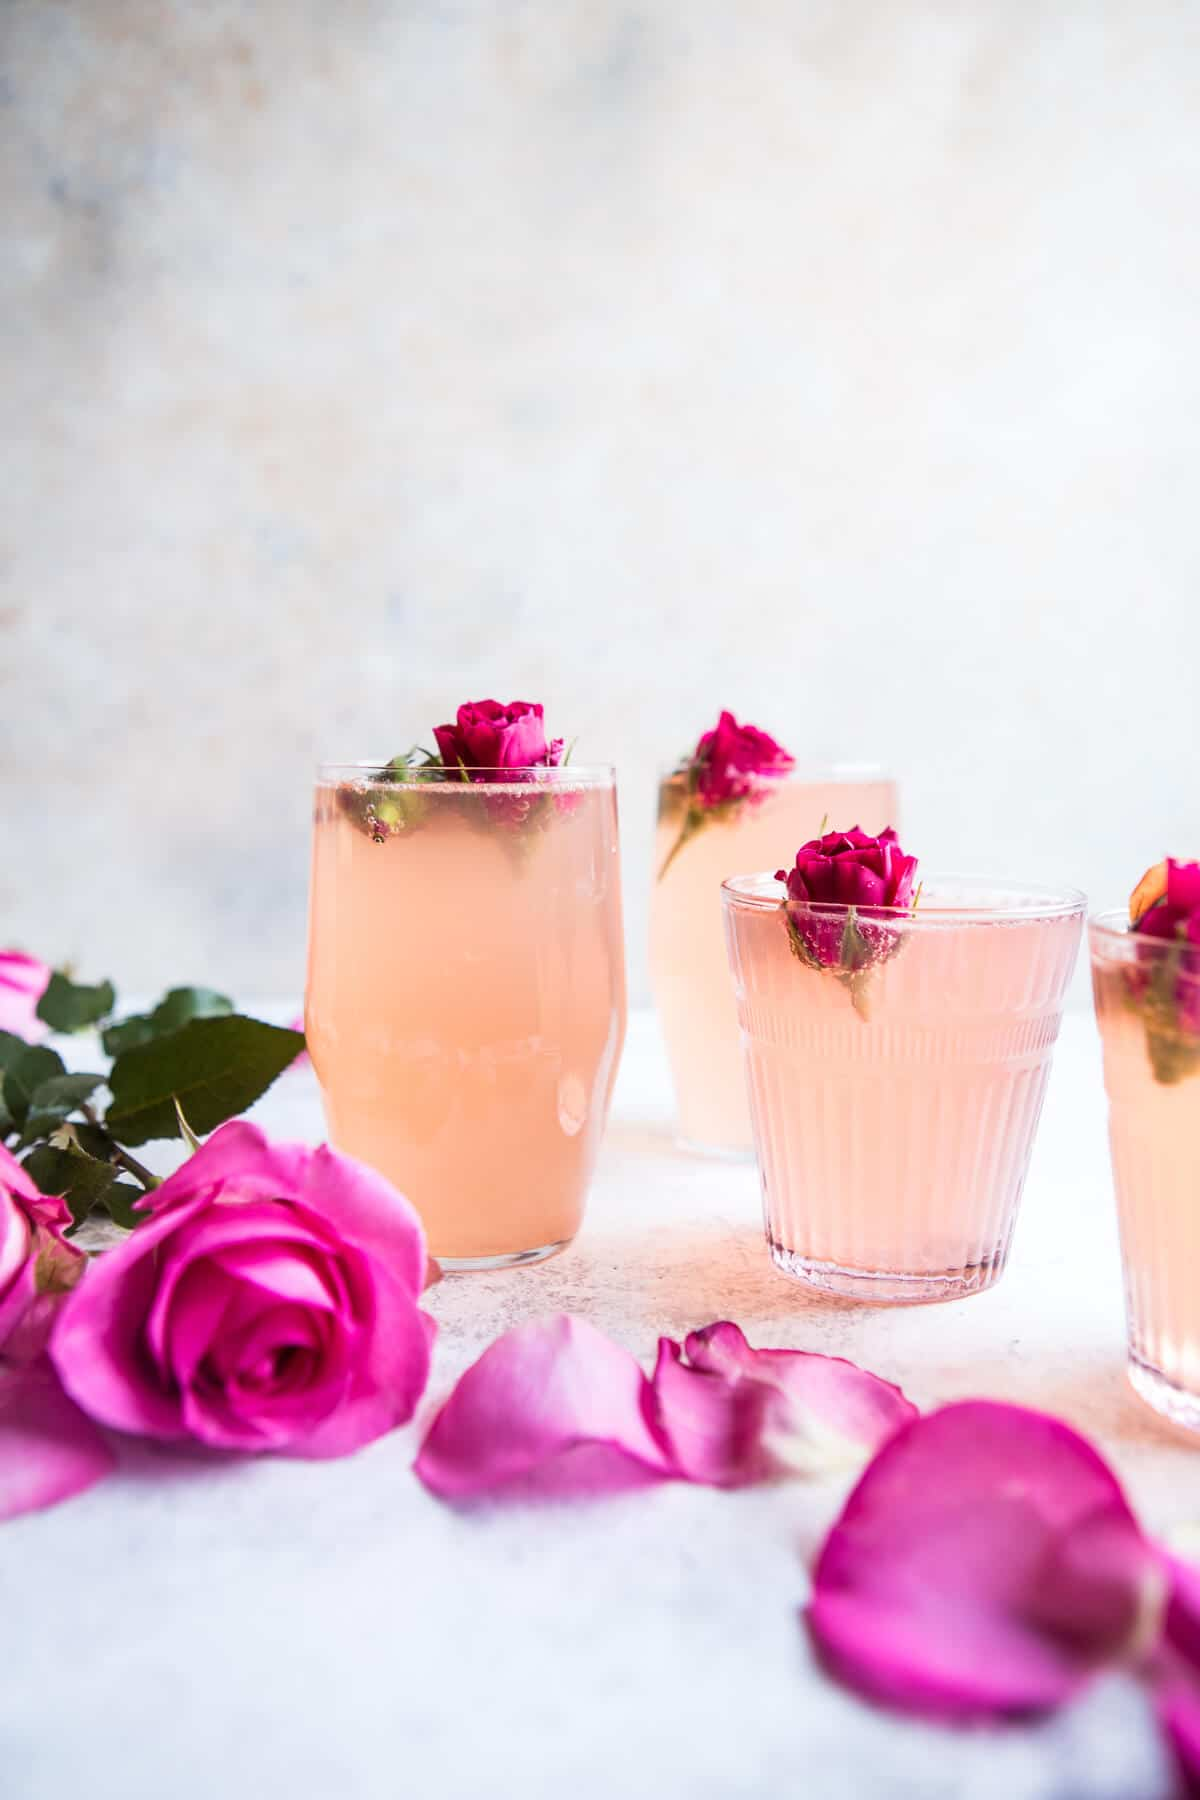 Rose Lemon Spritzer by Half Baked Harvest